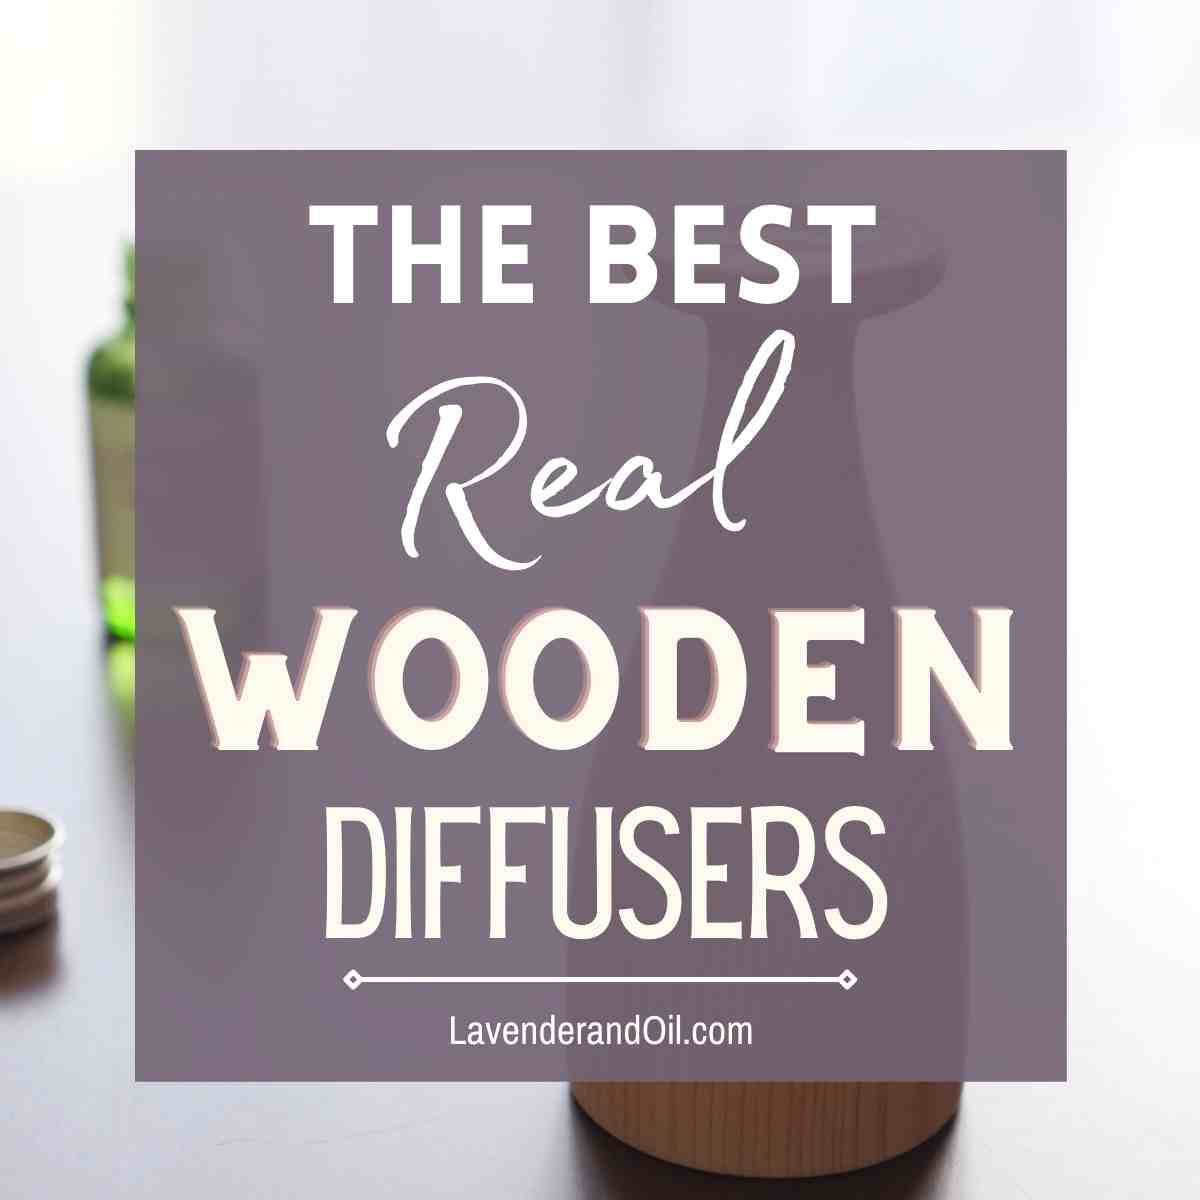 """A wooden diffuser with essential oil on table and text overlay, """"top wooden diffusers""""."""